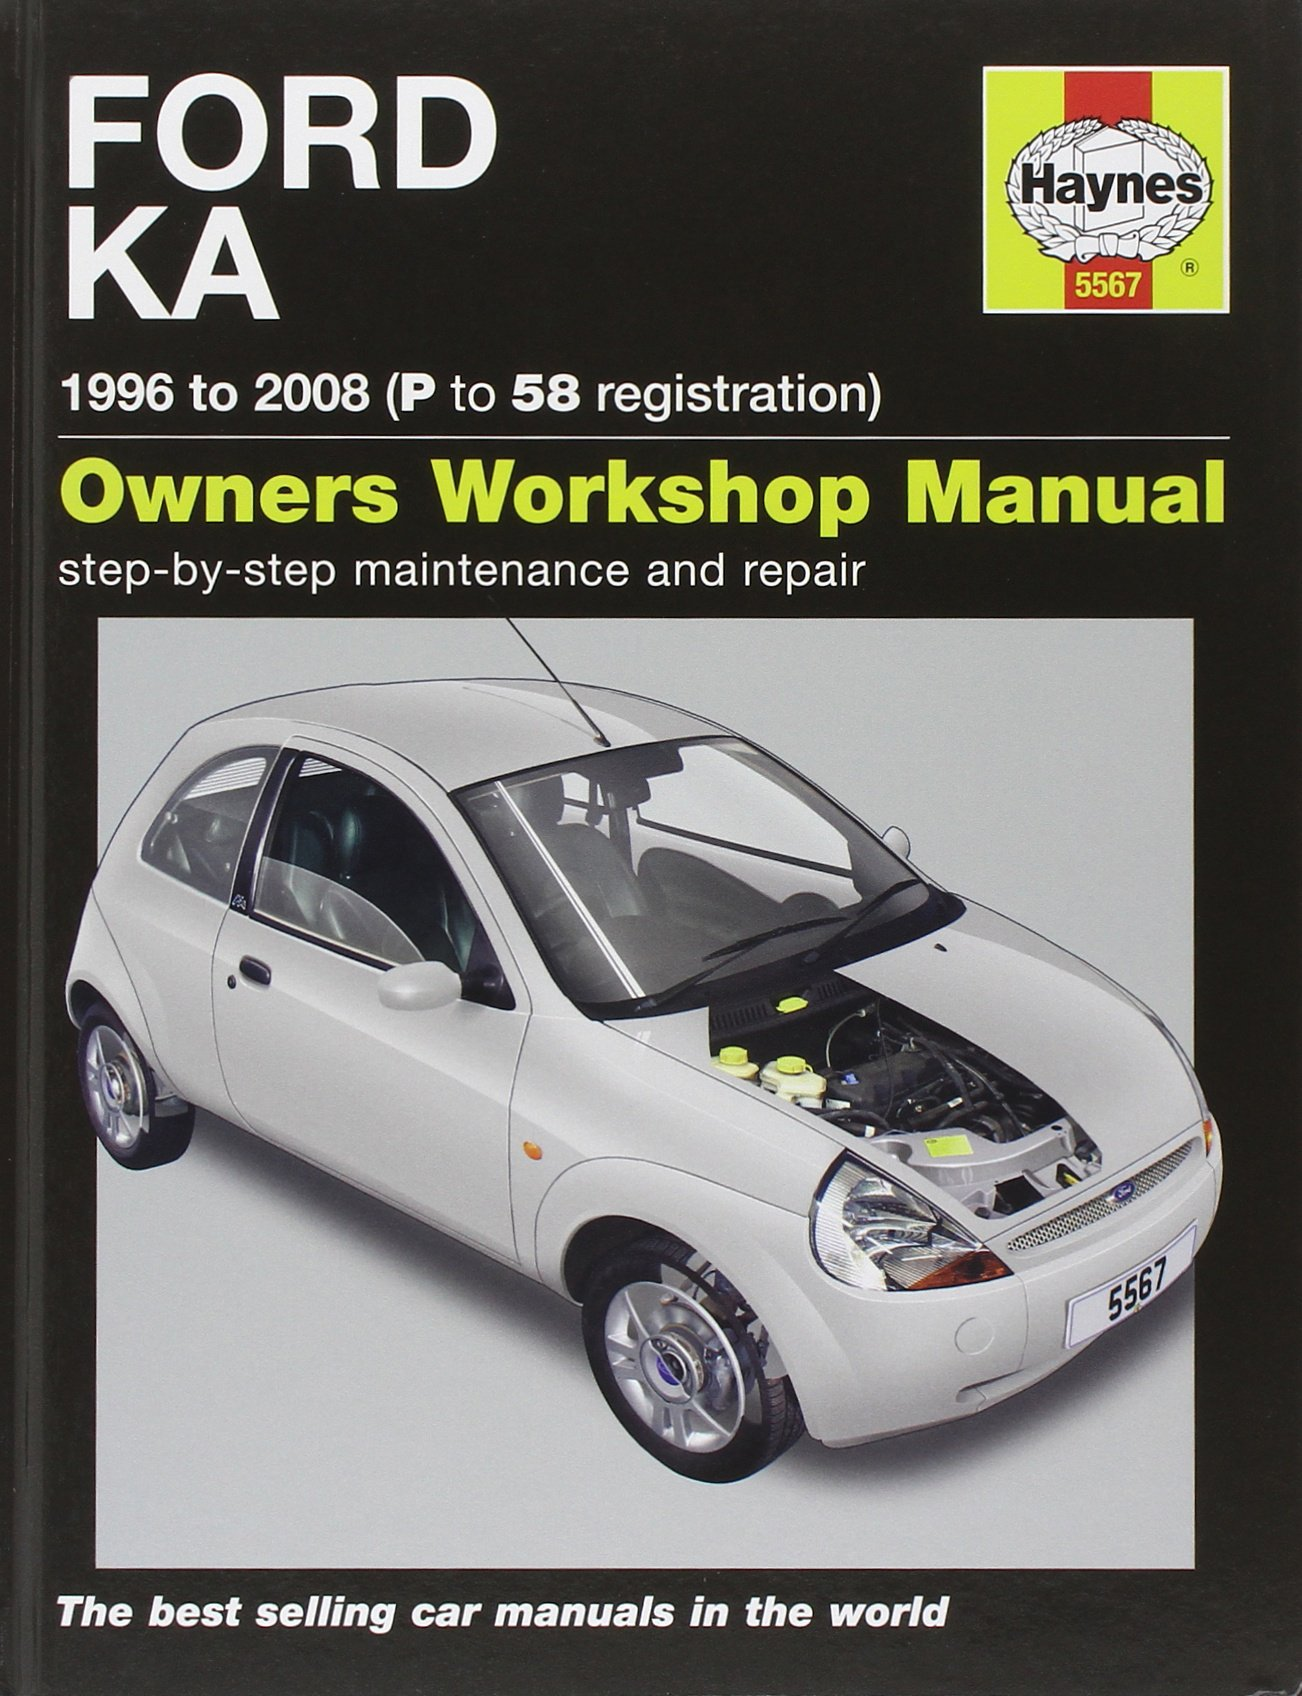 ford ka service and repair manual: 96-08 (haynes service and repair manuals